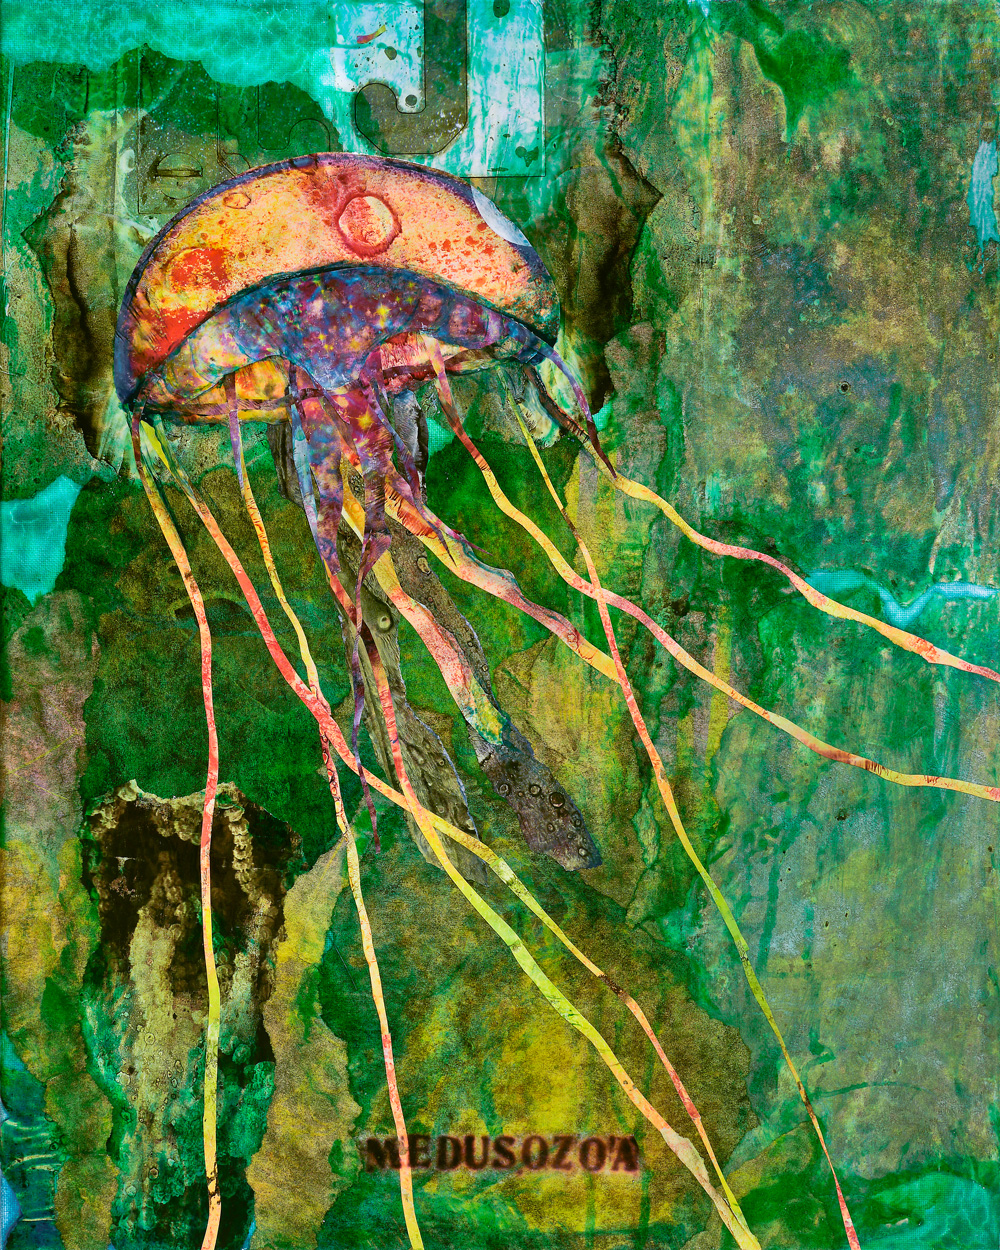 Medusozoa, Jellyfish    SOLD 20x16   Mixed Media on Canvas